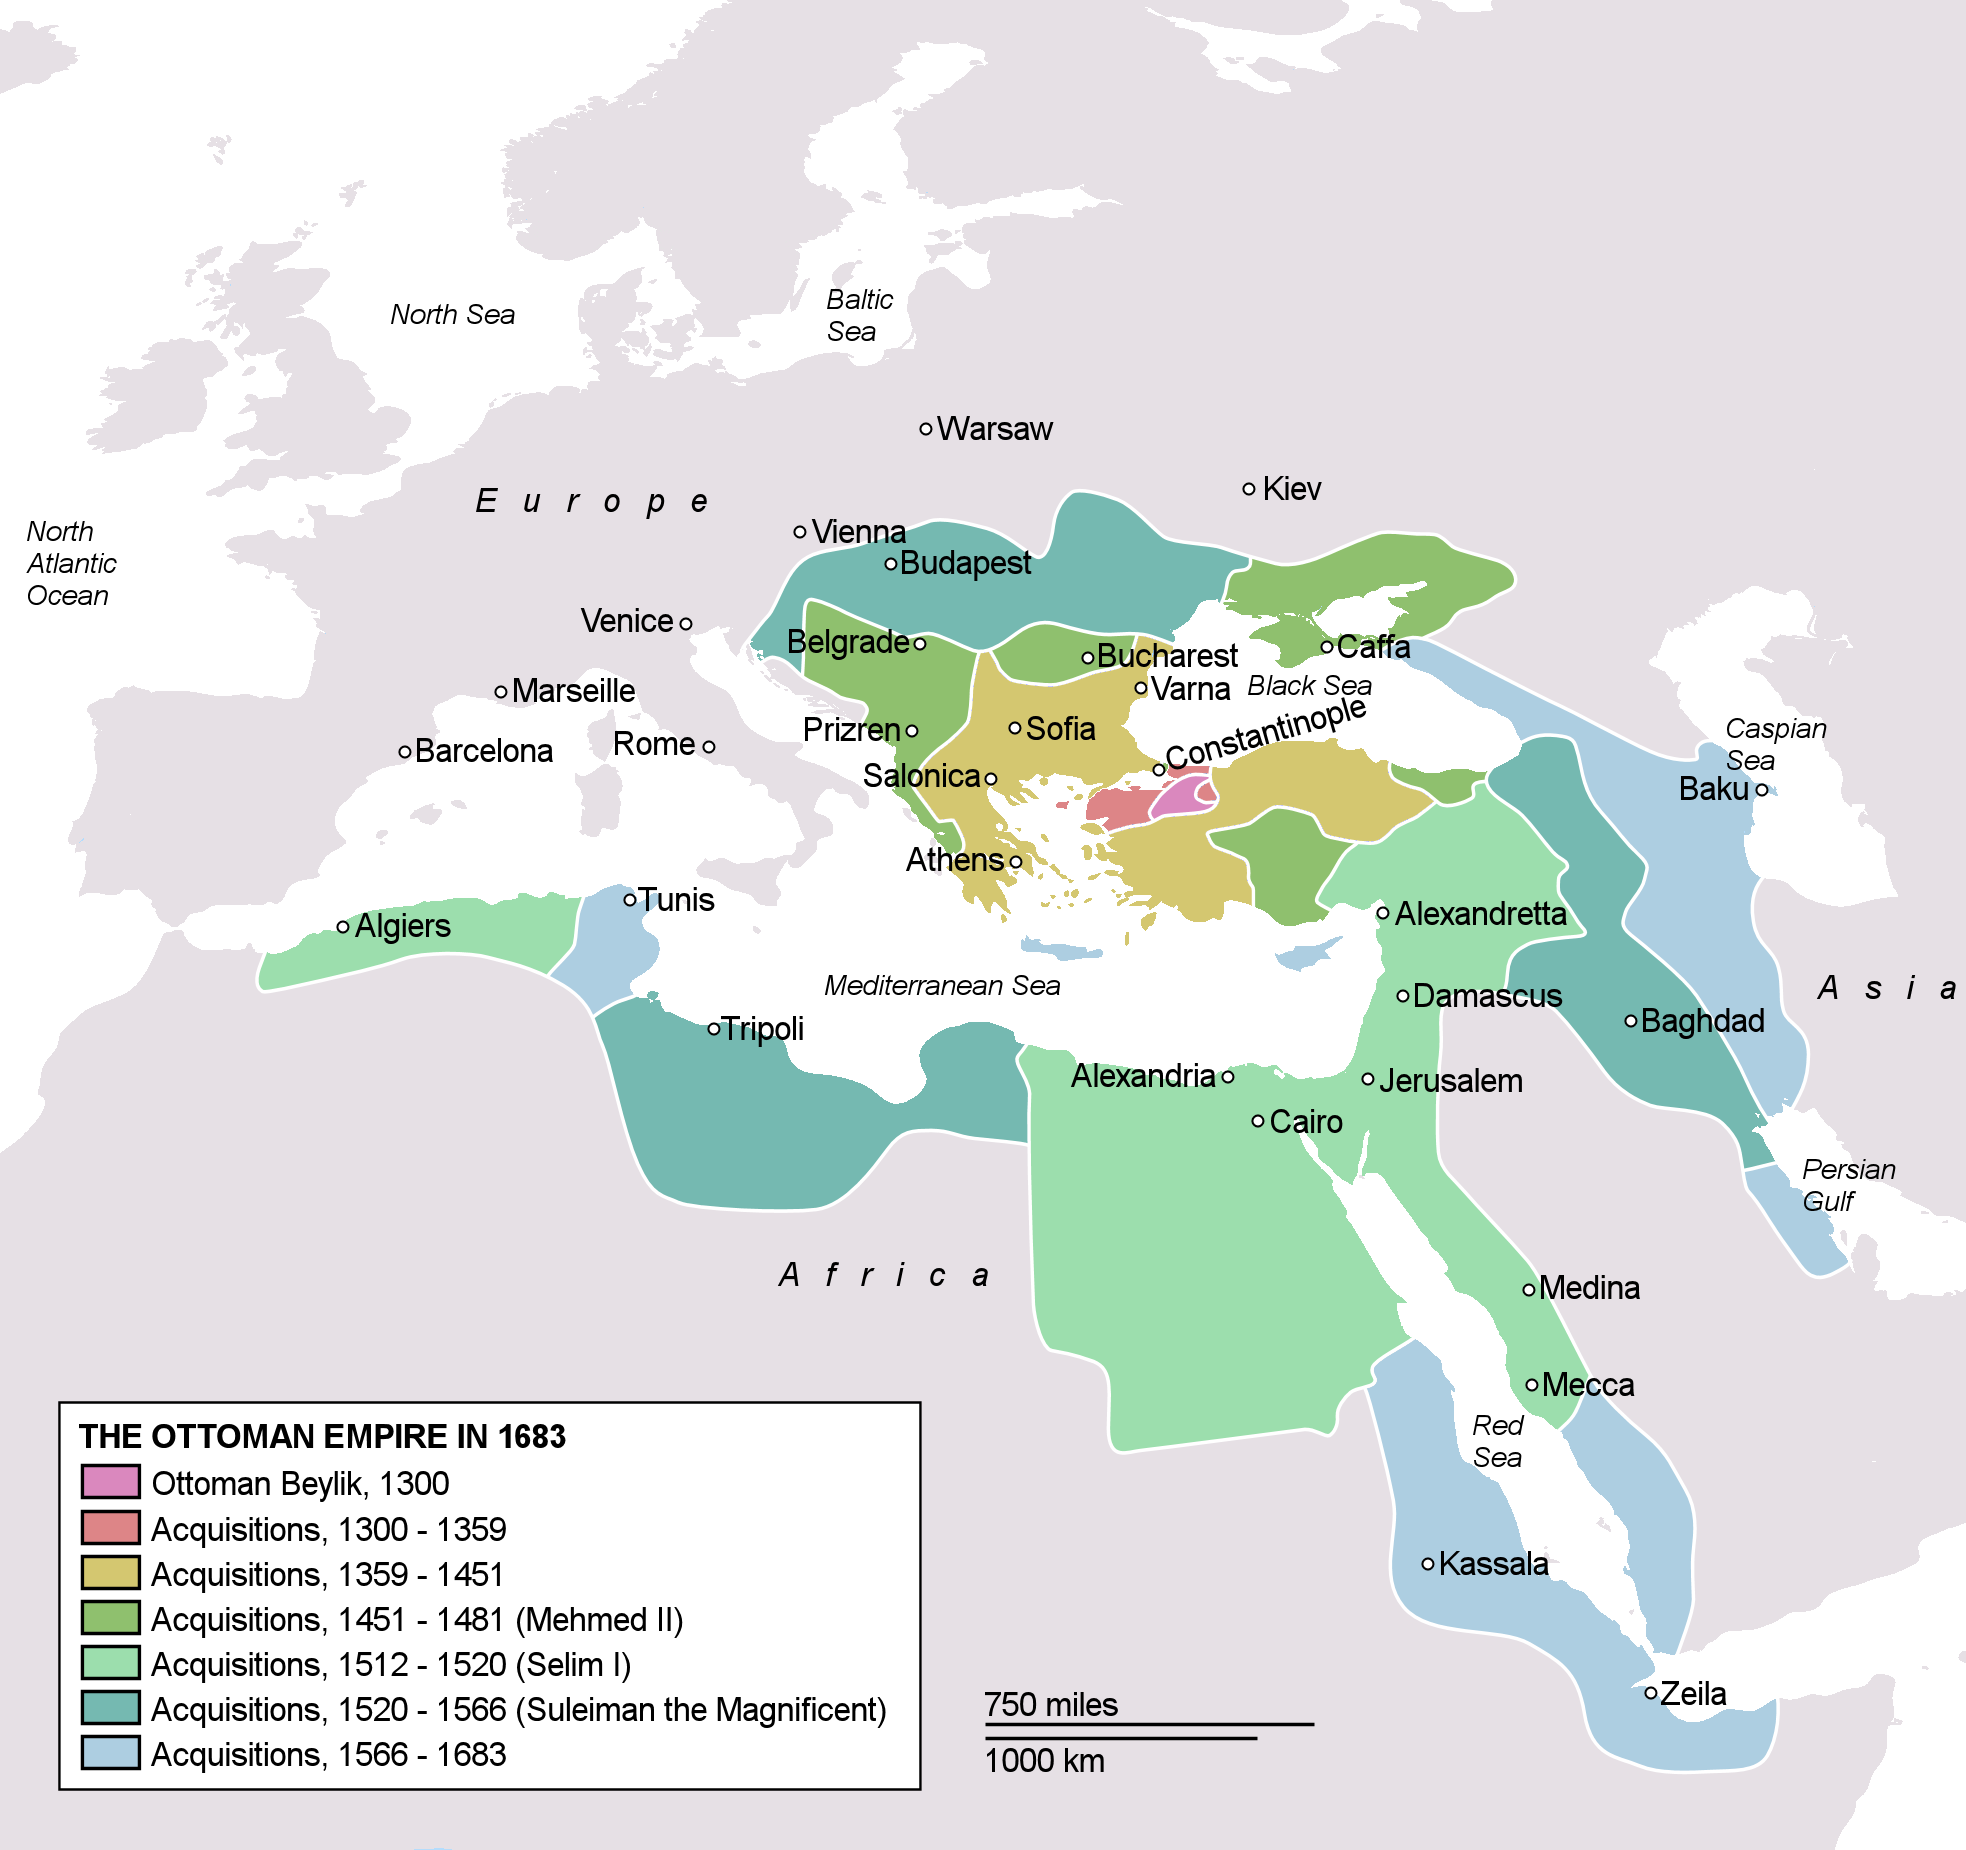 Ottoman Empire at its greatest extent 1683